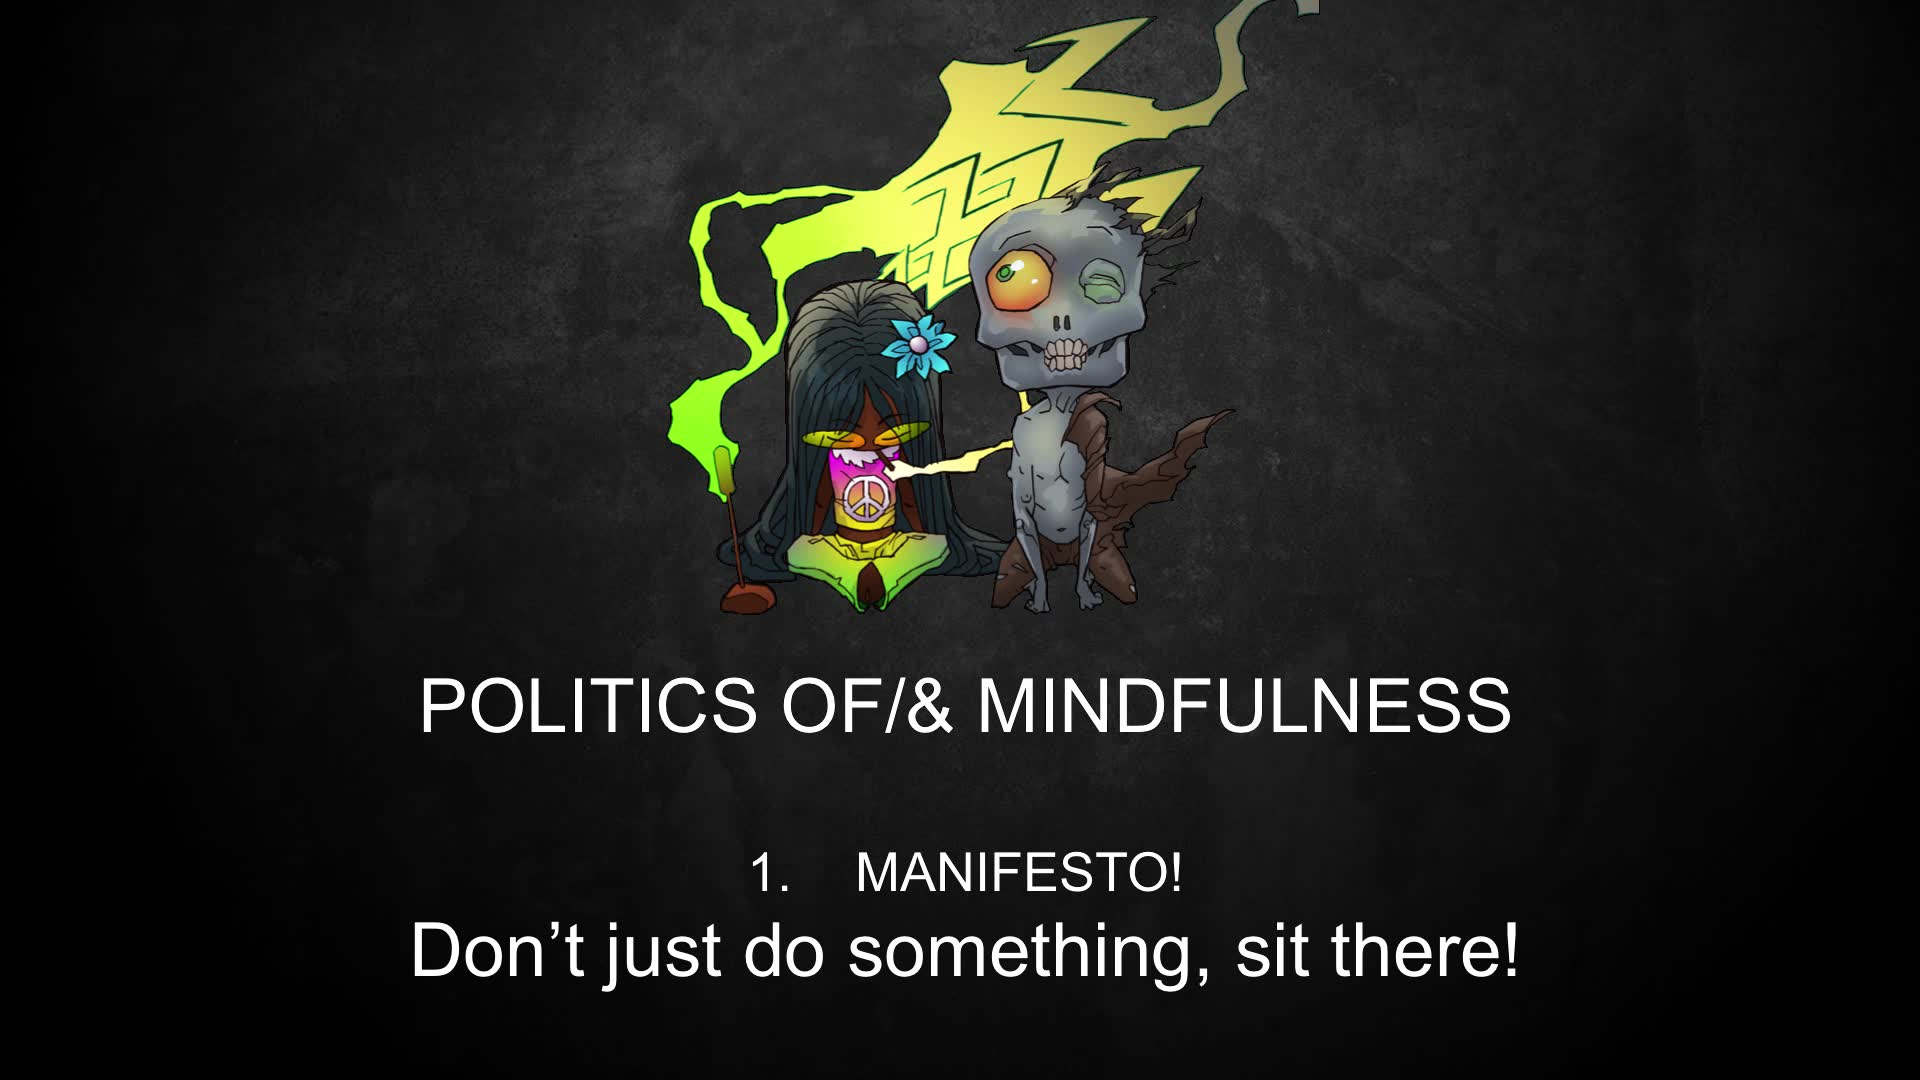 MANIFESTO! - Don't just do something, sit there!